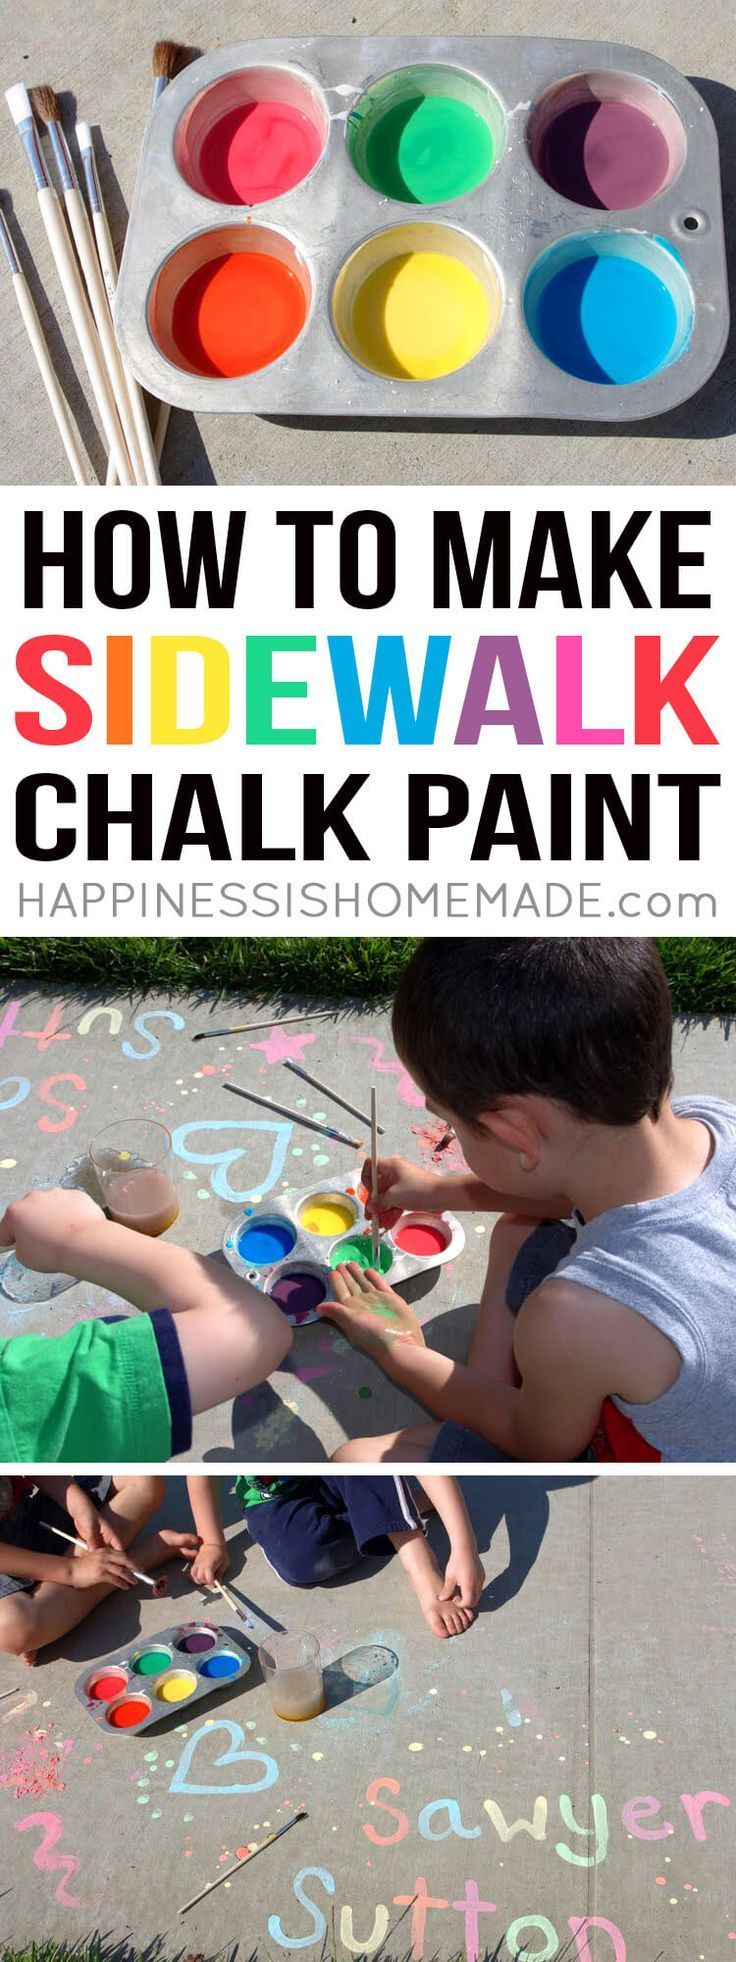 Learn How To Make Sidewalk Chalk Paint And Keep Your Children Entertained All Day Long With